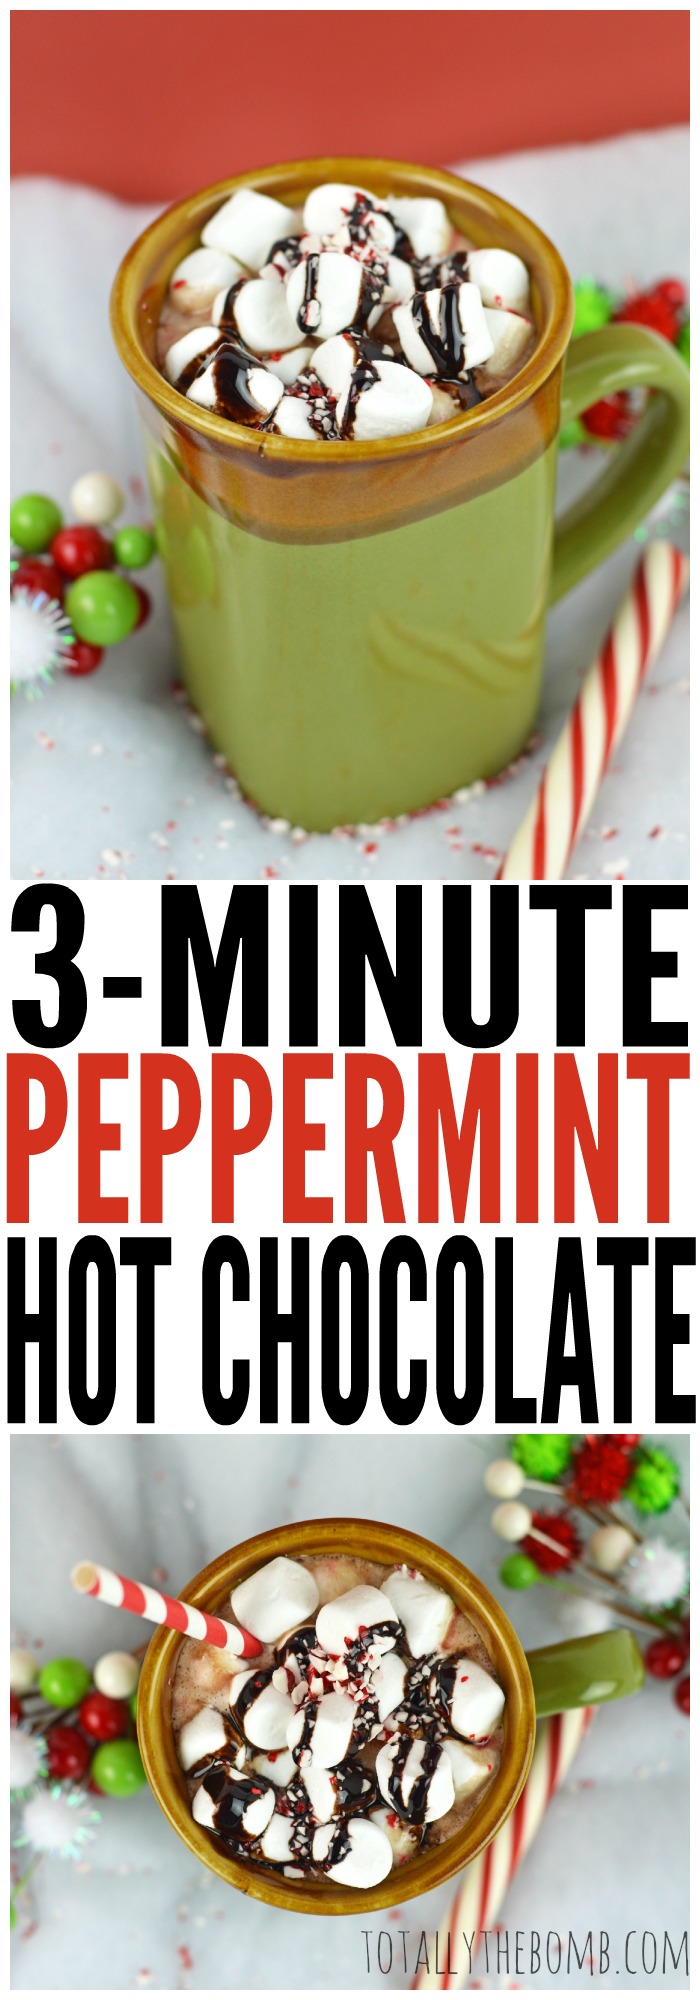 3-minute-peppermint-hot-chocolate